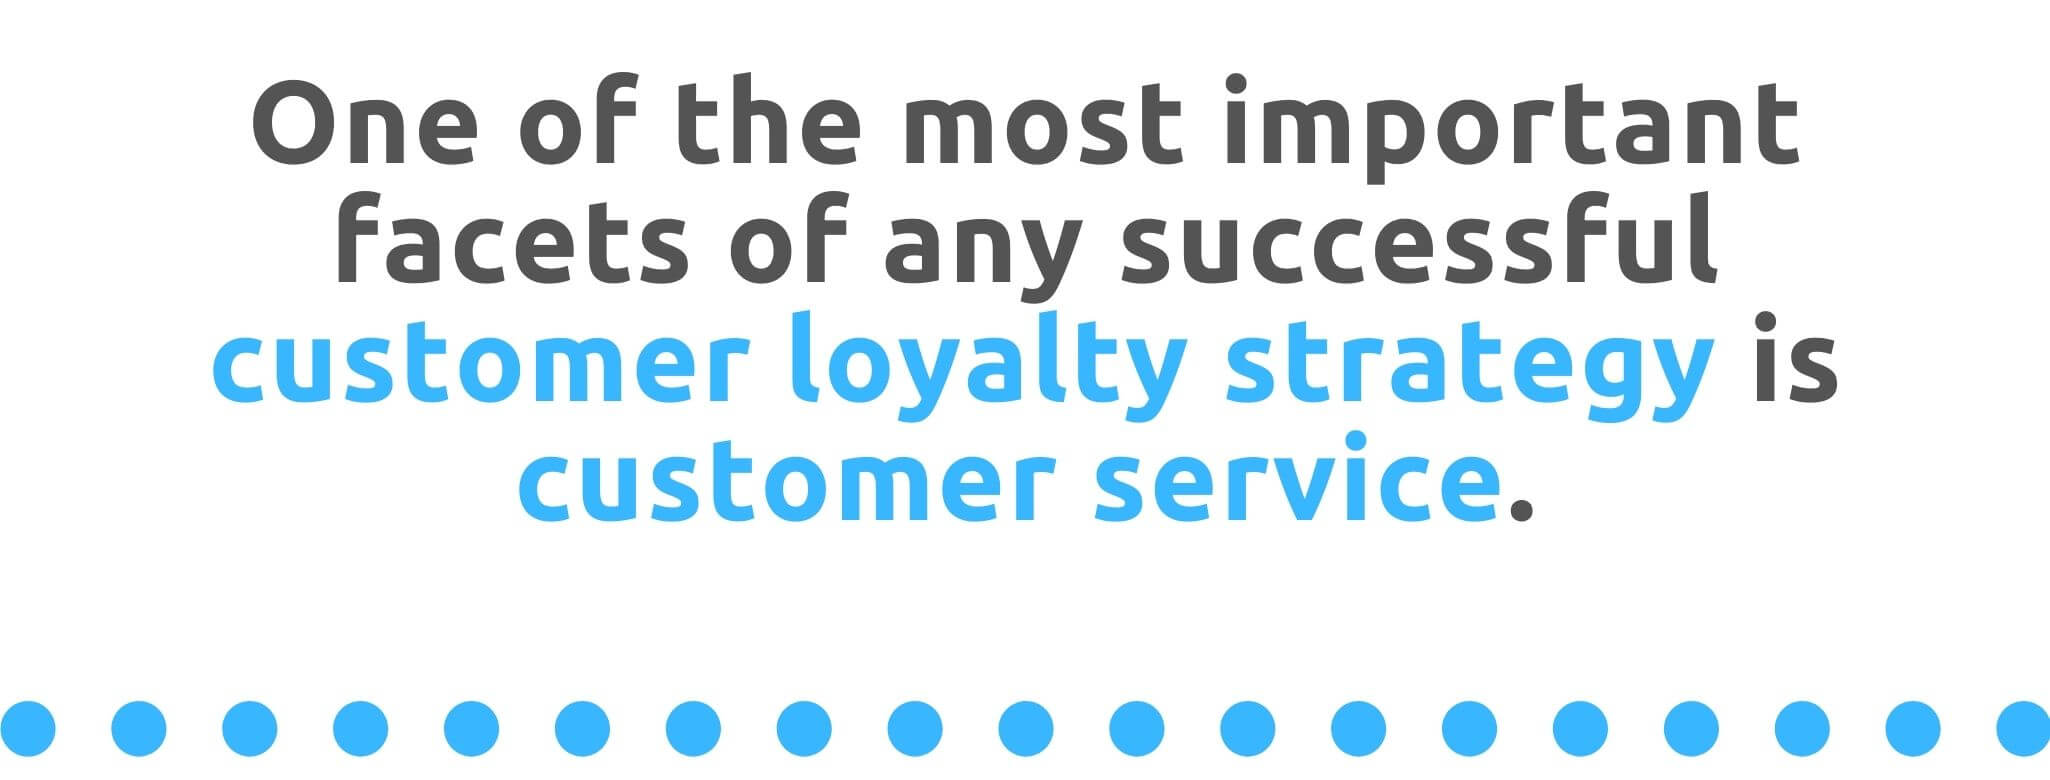 One of the most important facets of any successful customer loyalty strategy is customer service - 21 Way to Encourage Customer Loyalty - Replyco